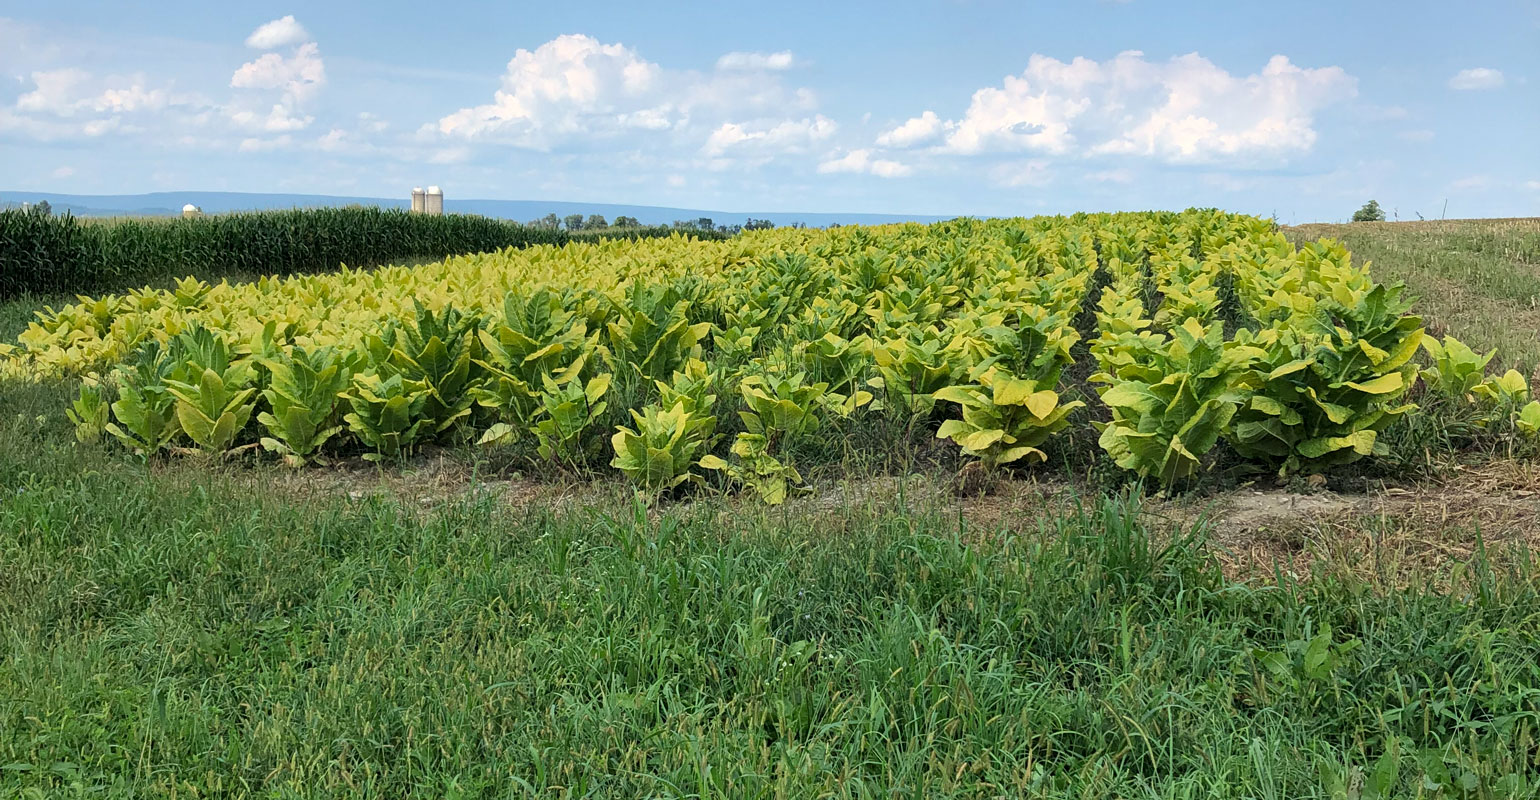 View of tobacco crop